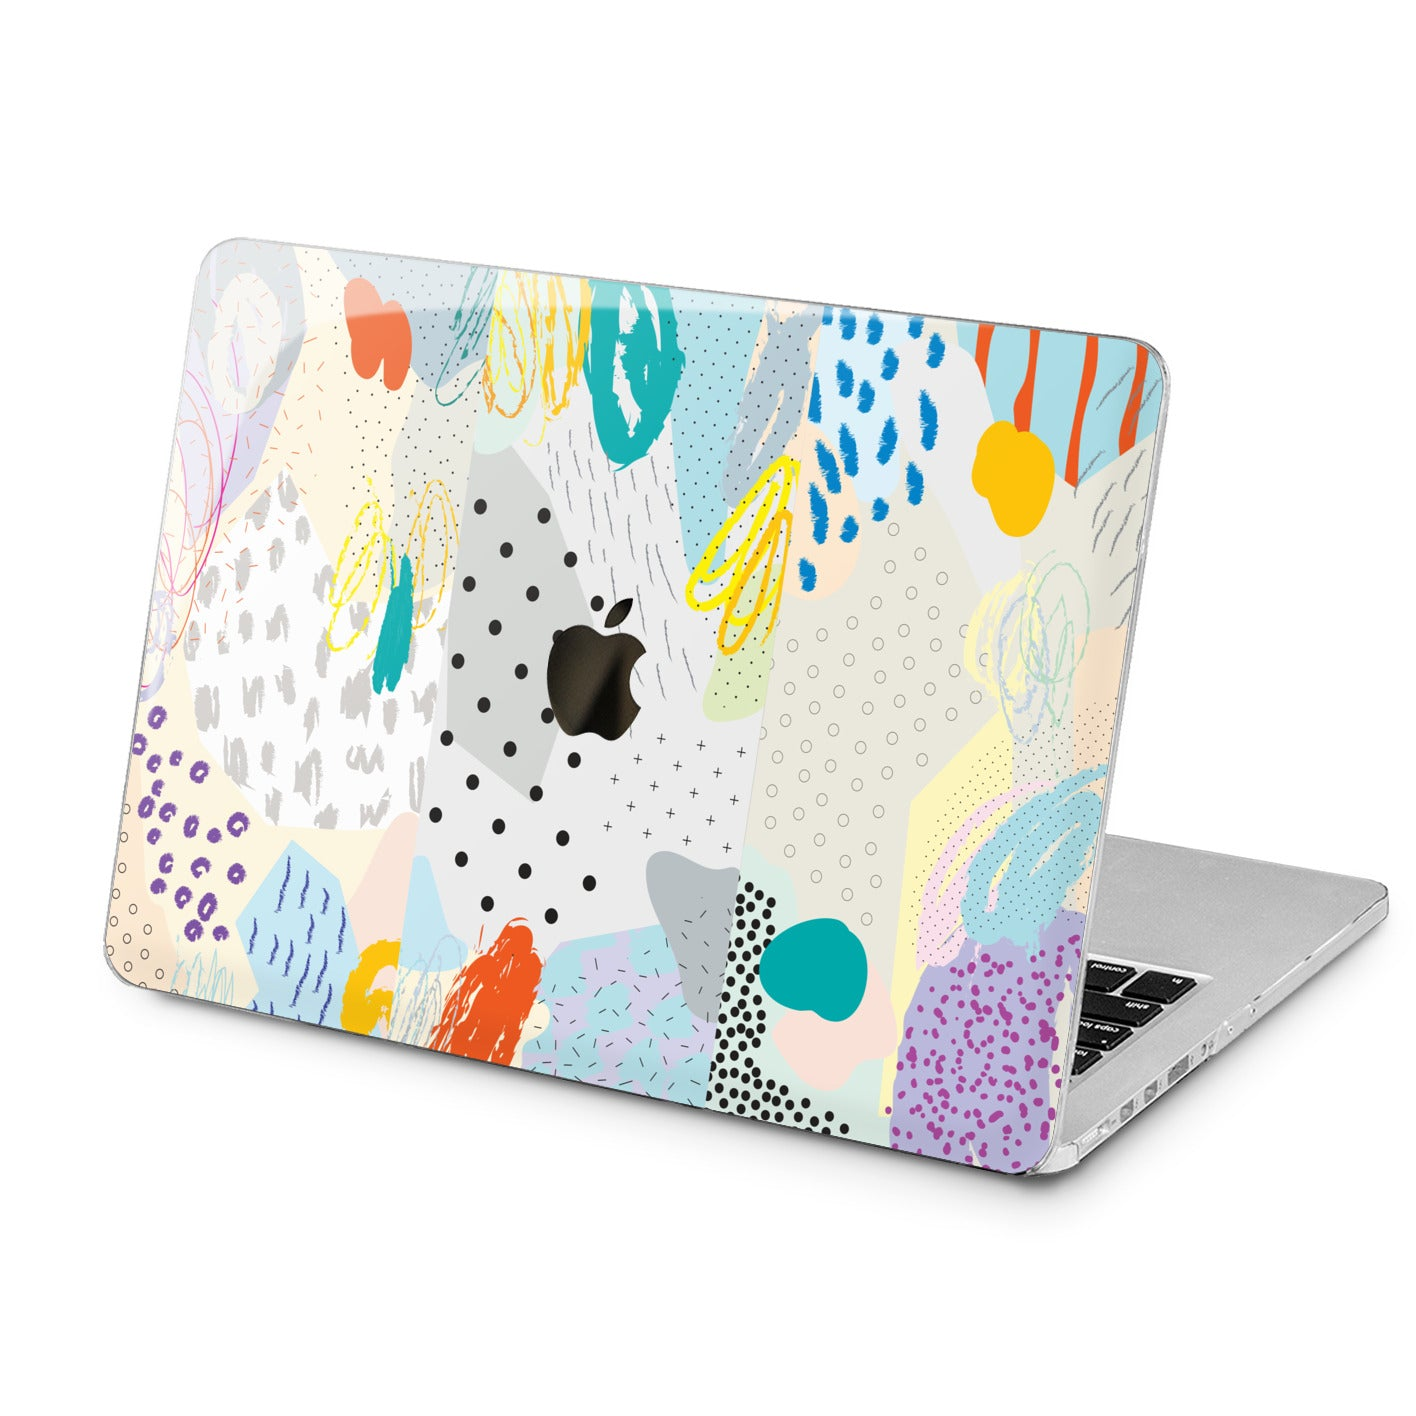 Lex Altern Lex Altern Cute Colored Art Case for your Laptop Apple Macbook.